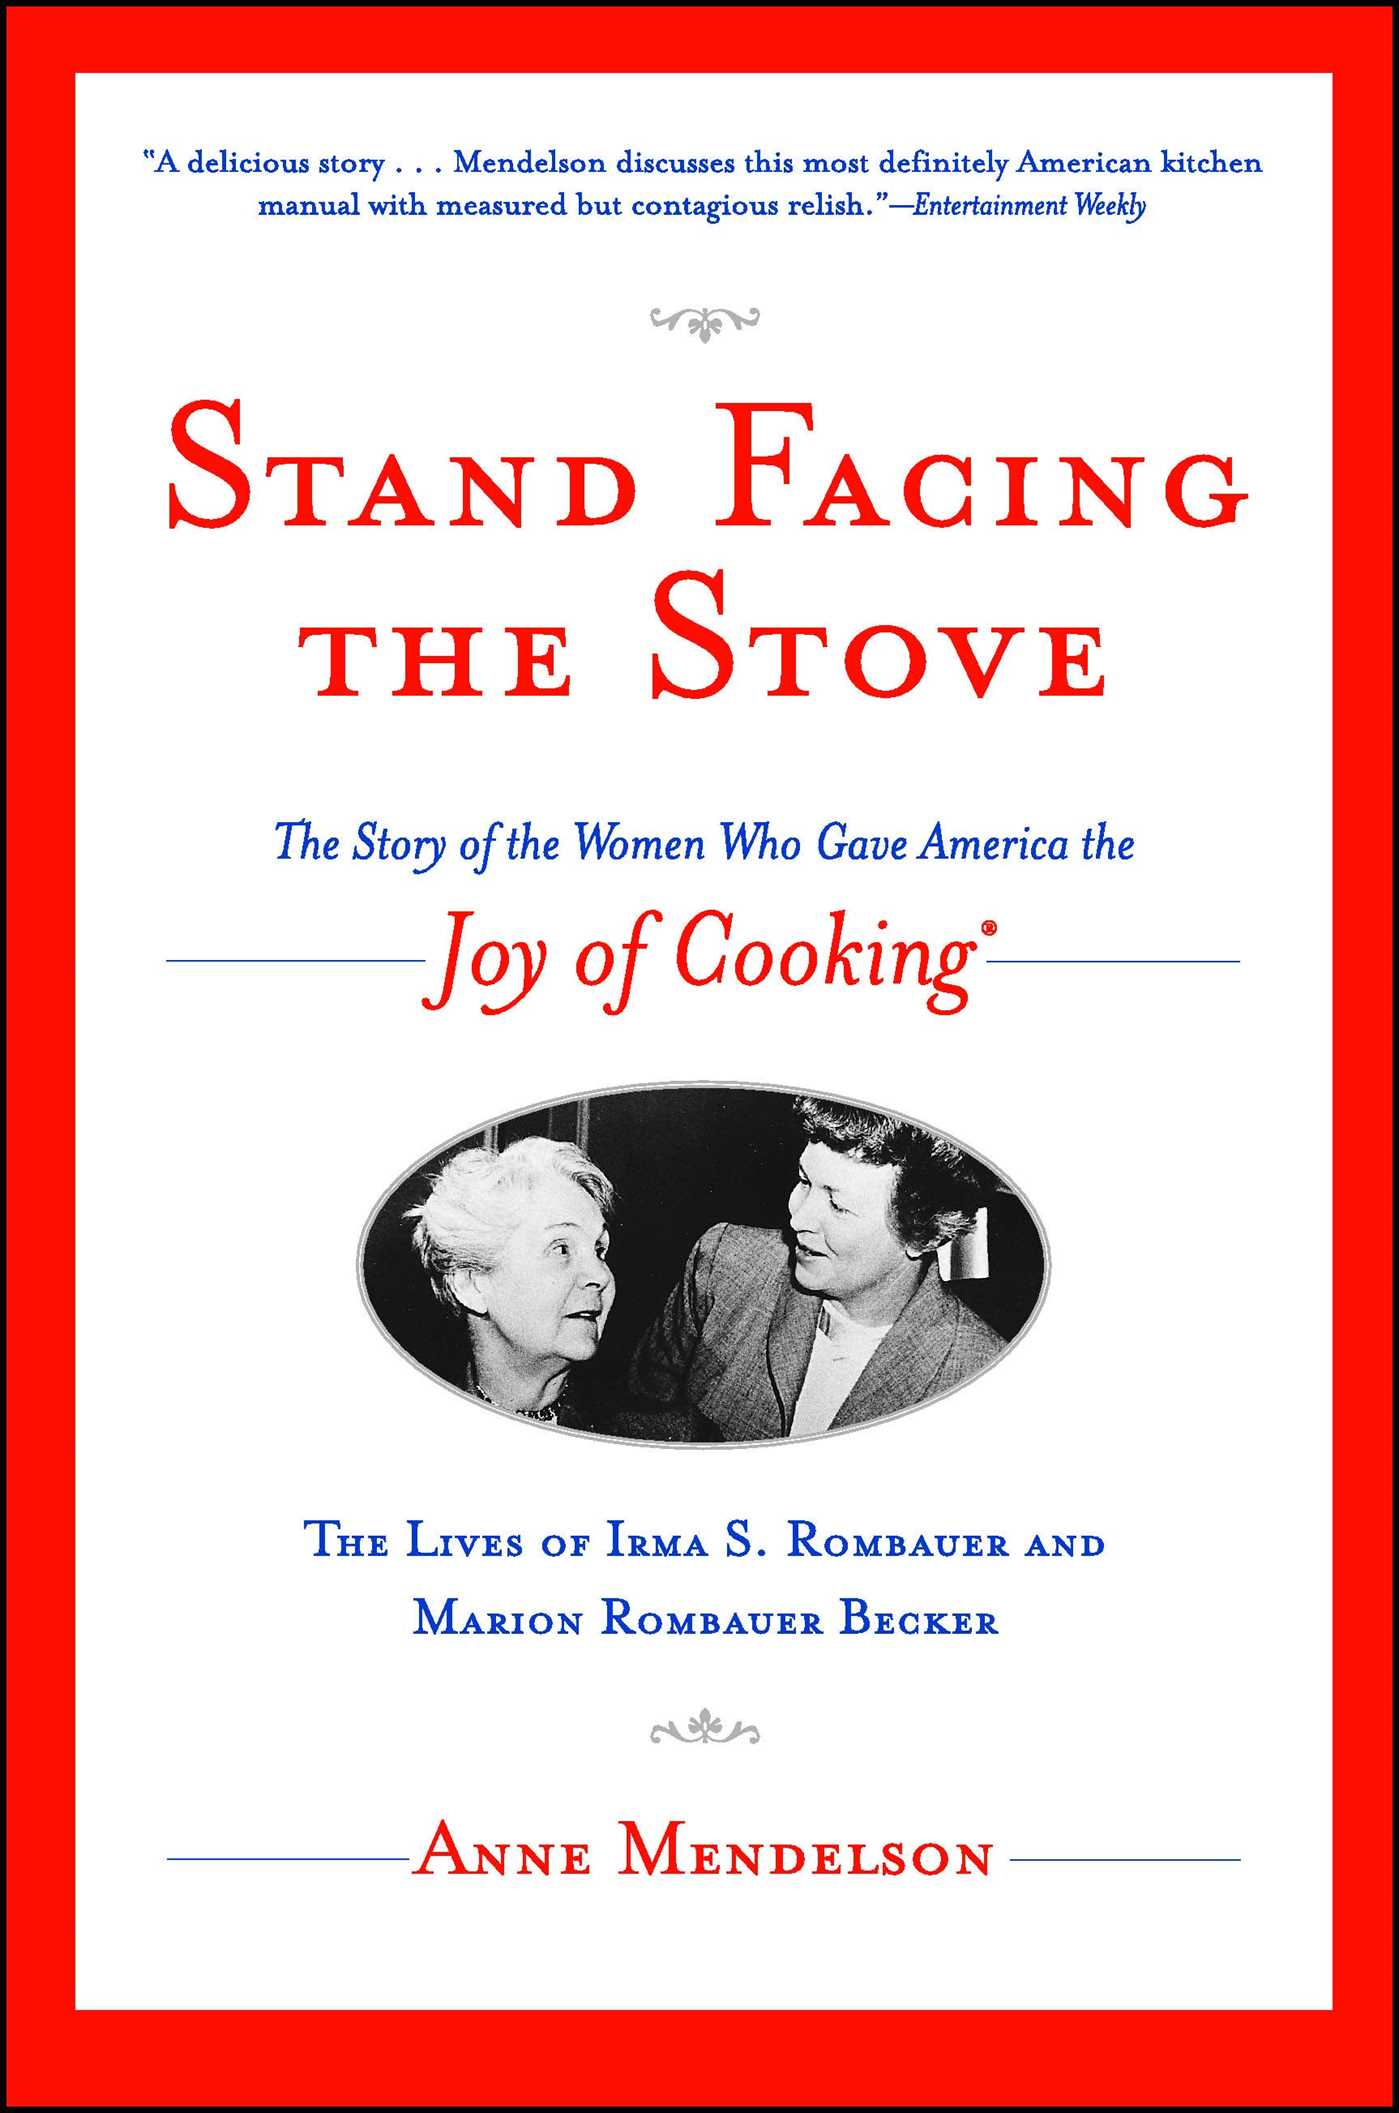 Stand facing the stove 9780743229395 hr